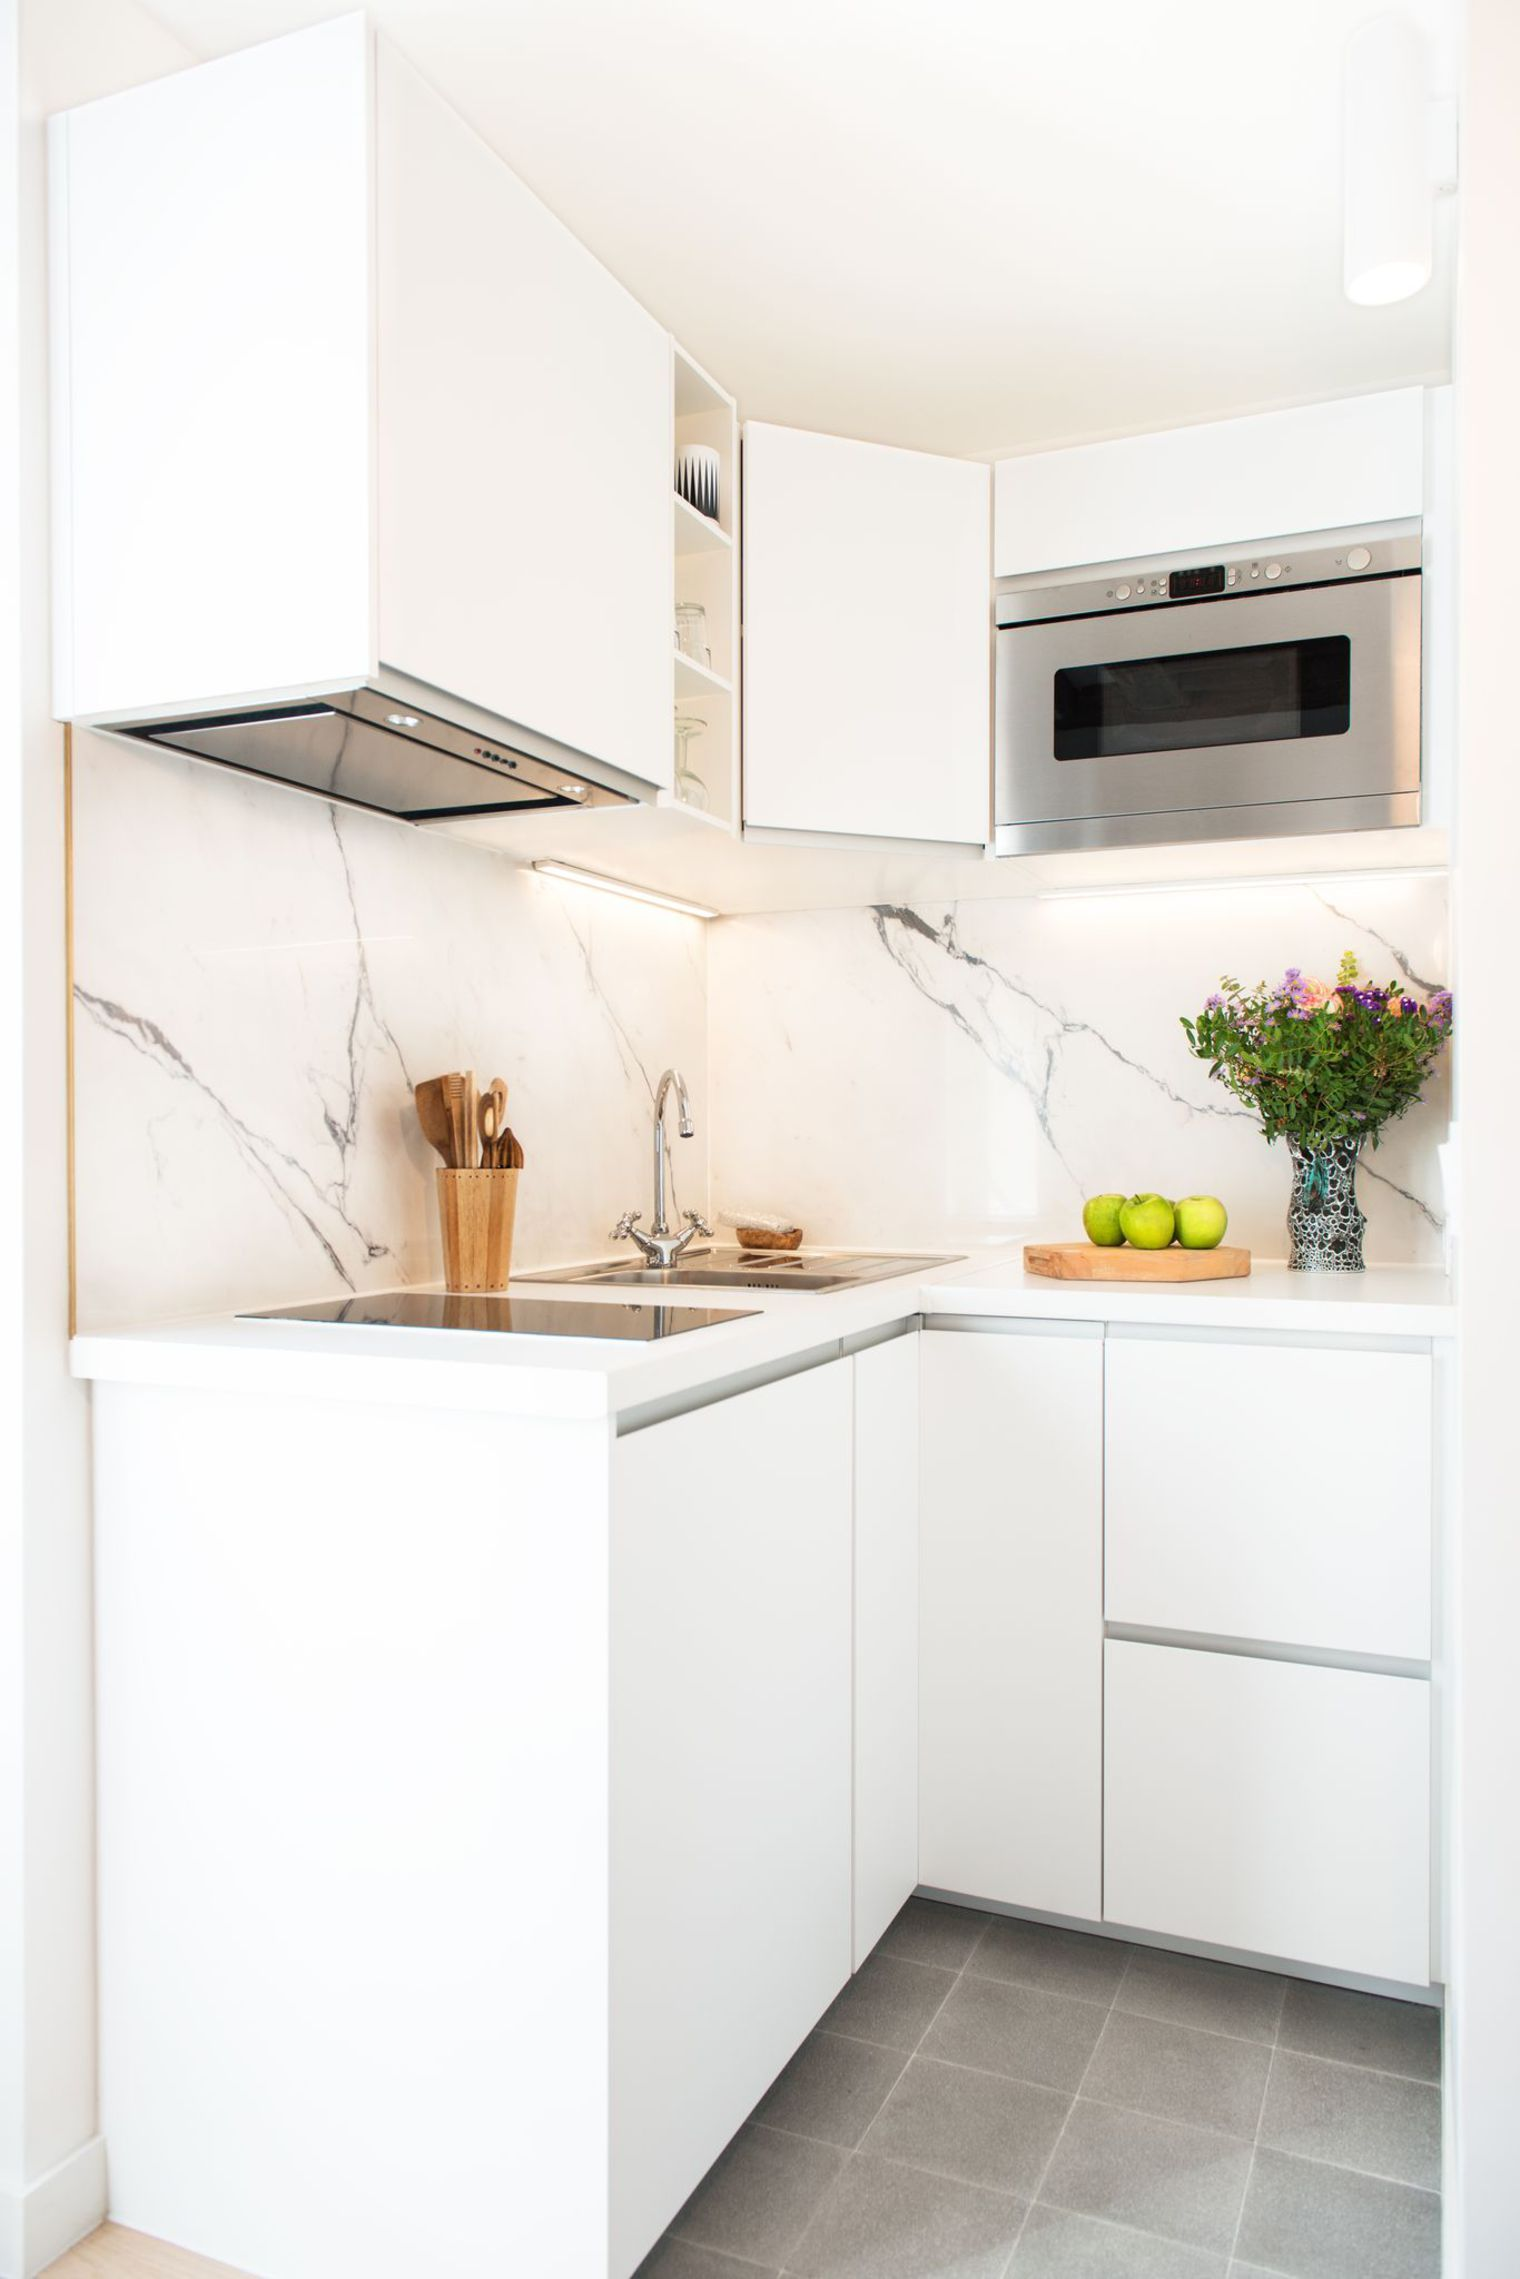 50 Best Small Kitchen Ideas and Designs for 2016 | Spaces, Bright ...